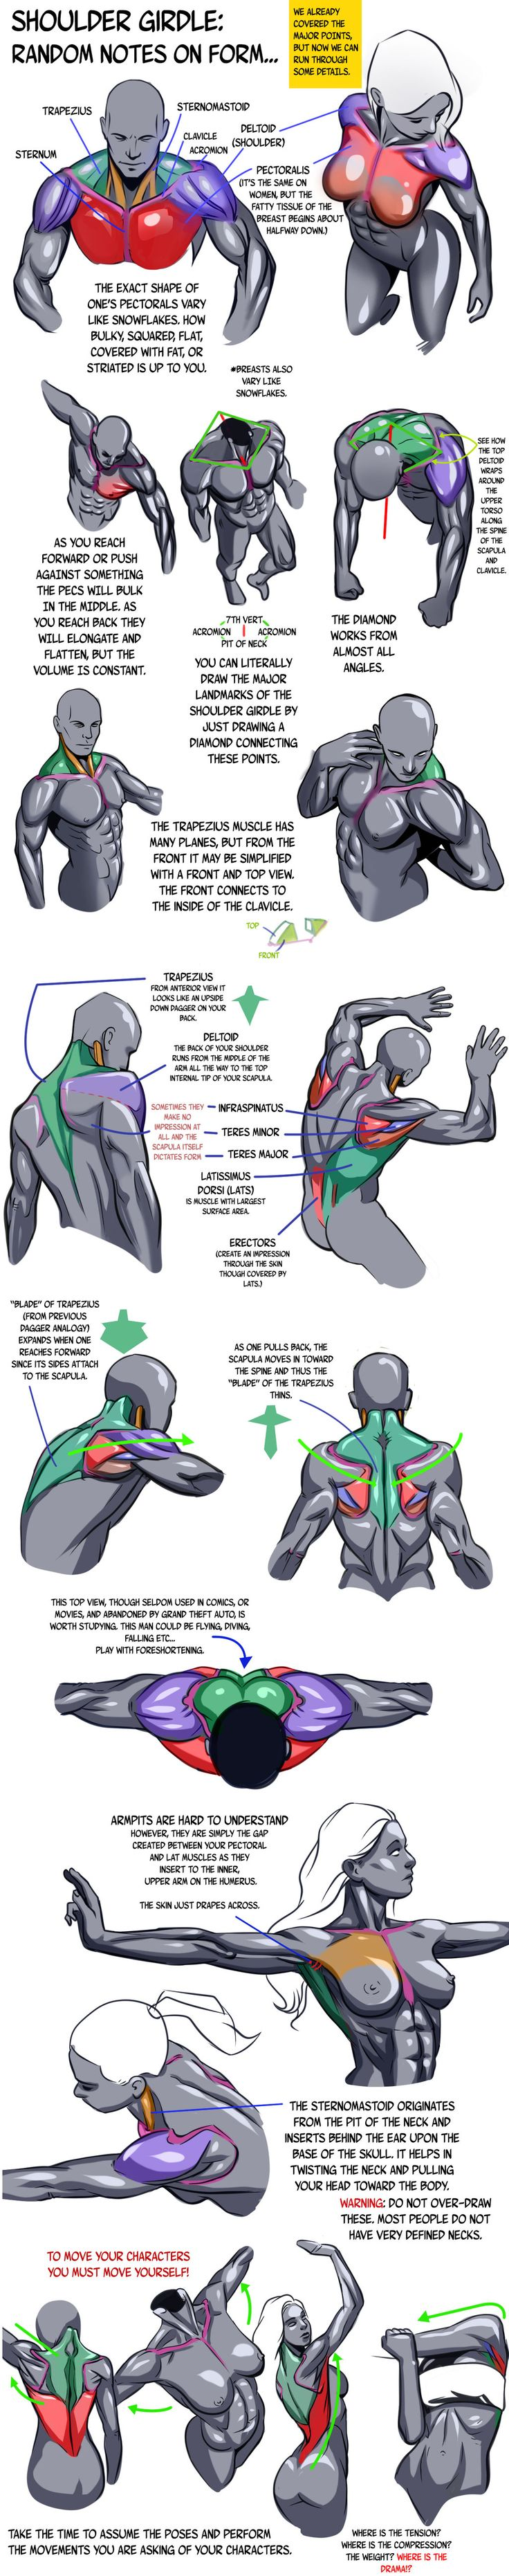 This is technically a guide for illustrating people but it's a nice overview of the Shoulder Girdle